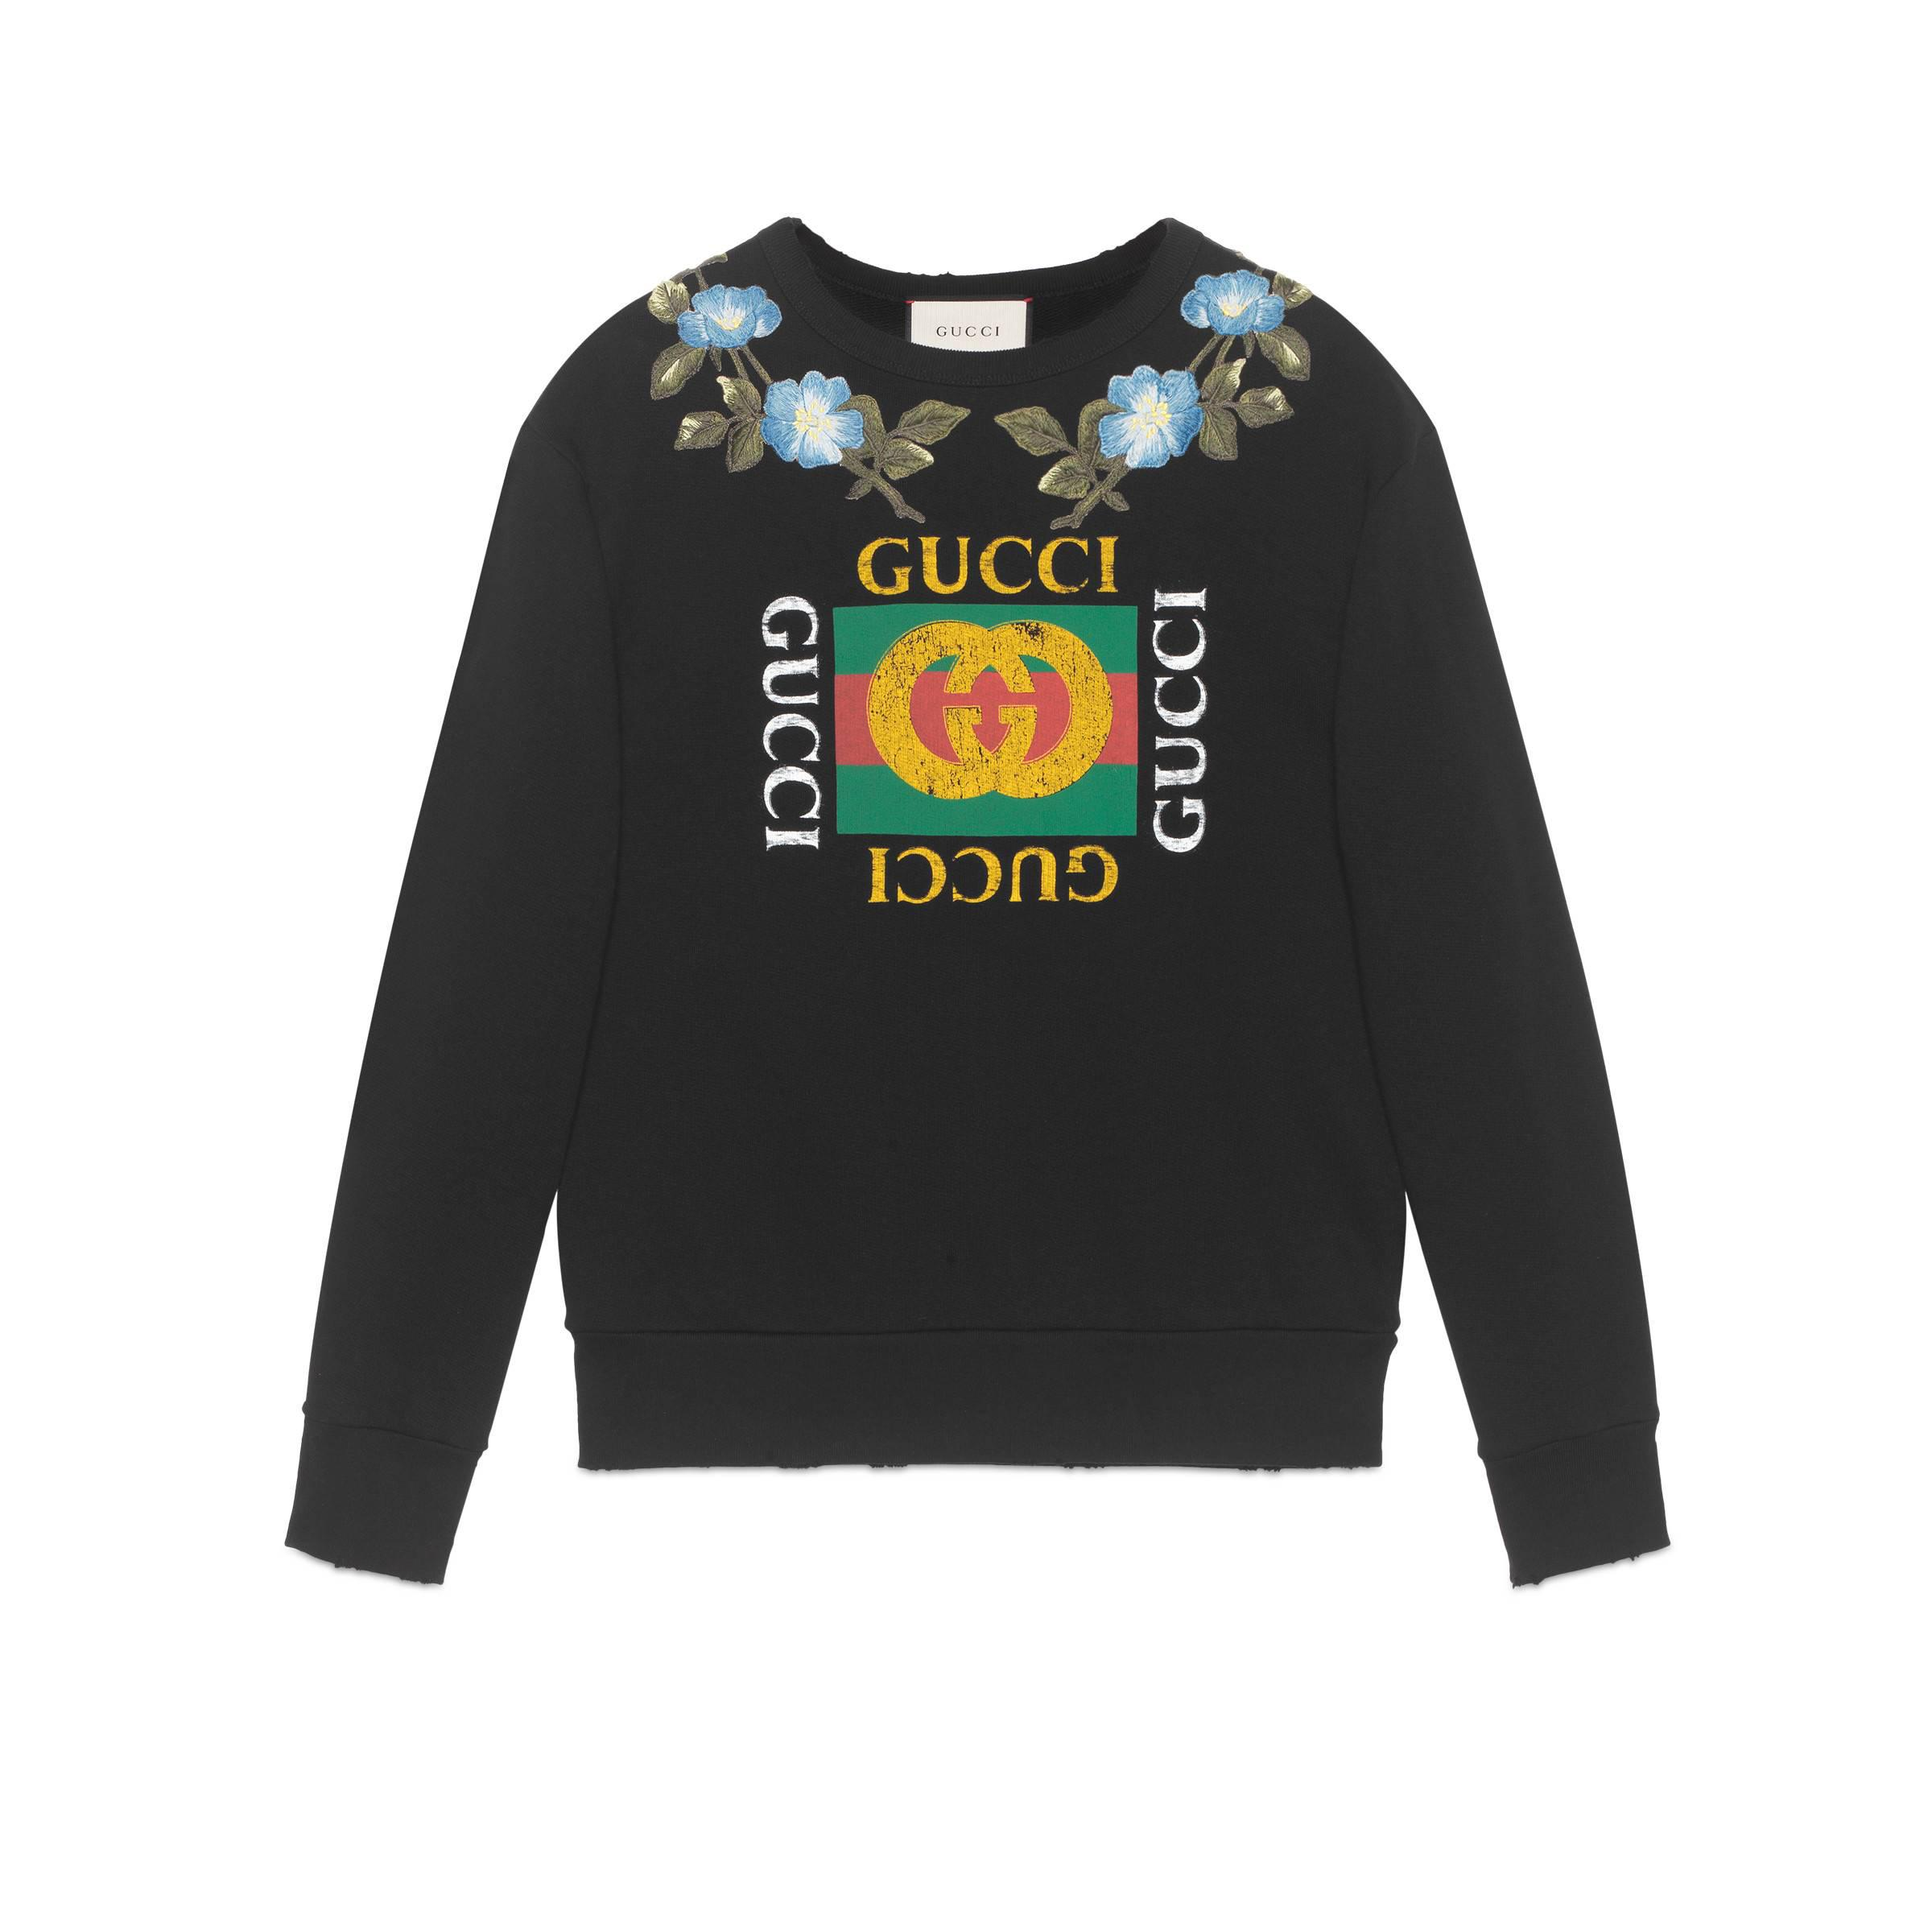 d64708a8bf3 Gucci - Black Cotton Sweatshirt With Logo And Flowers for Men - Lyst. View  fullscreen